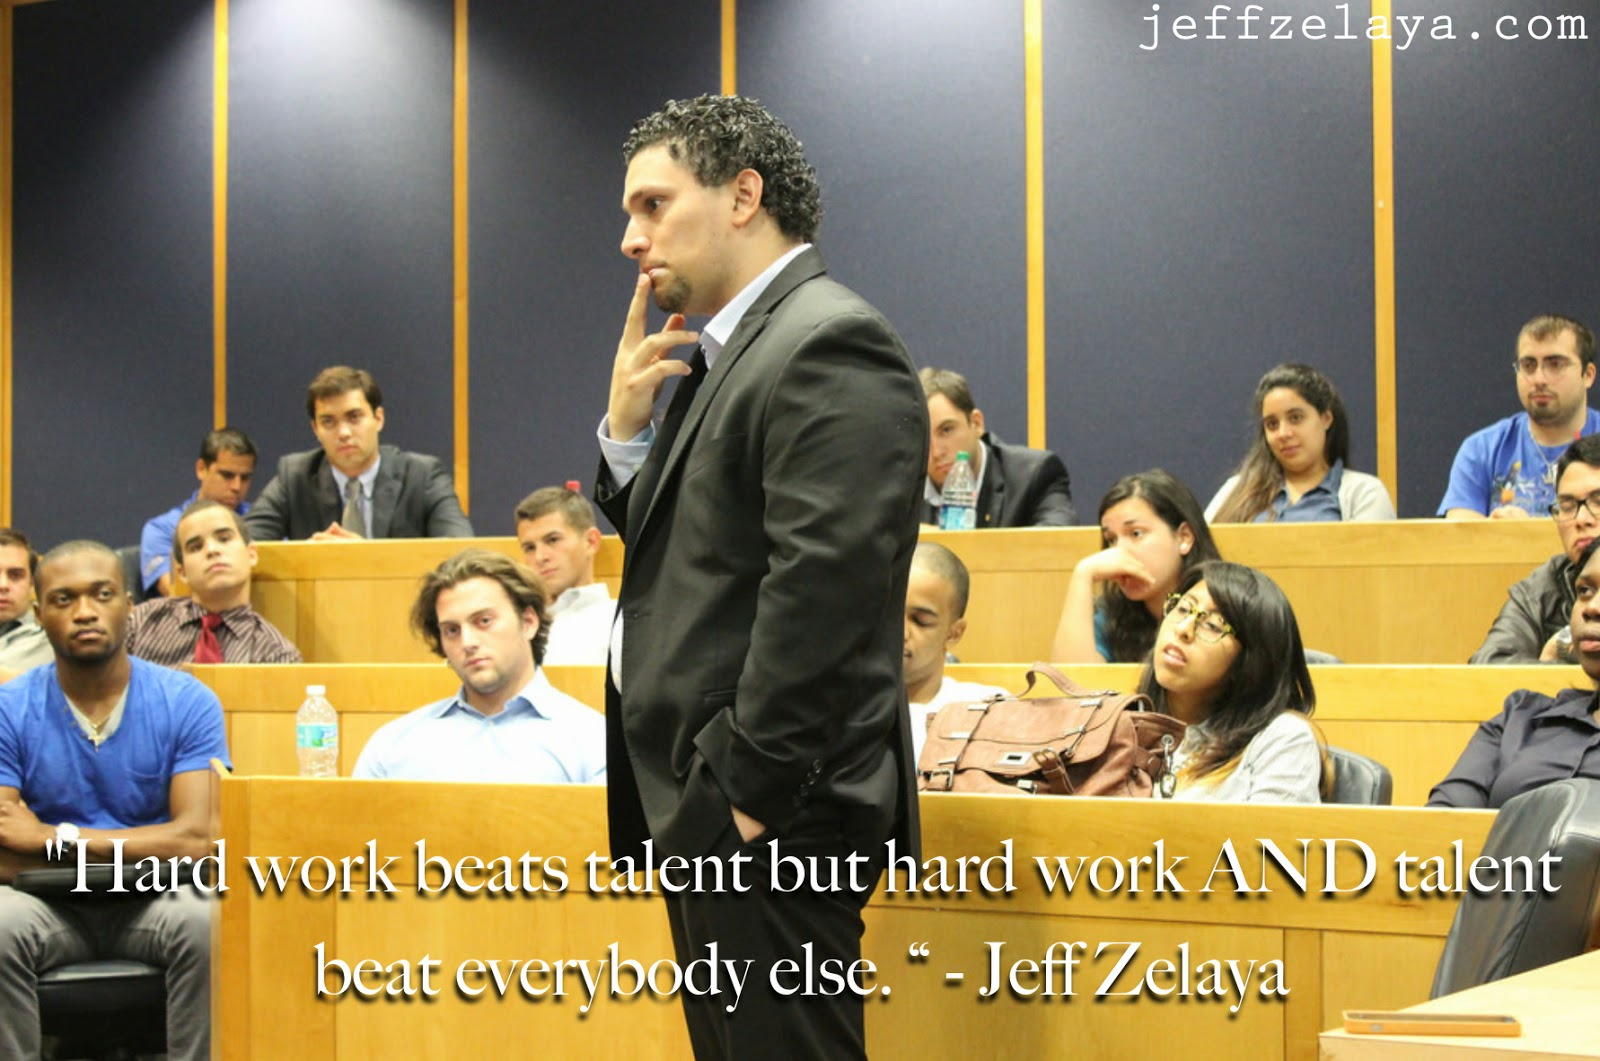 hard work beats talent quote